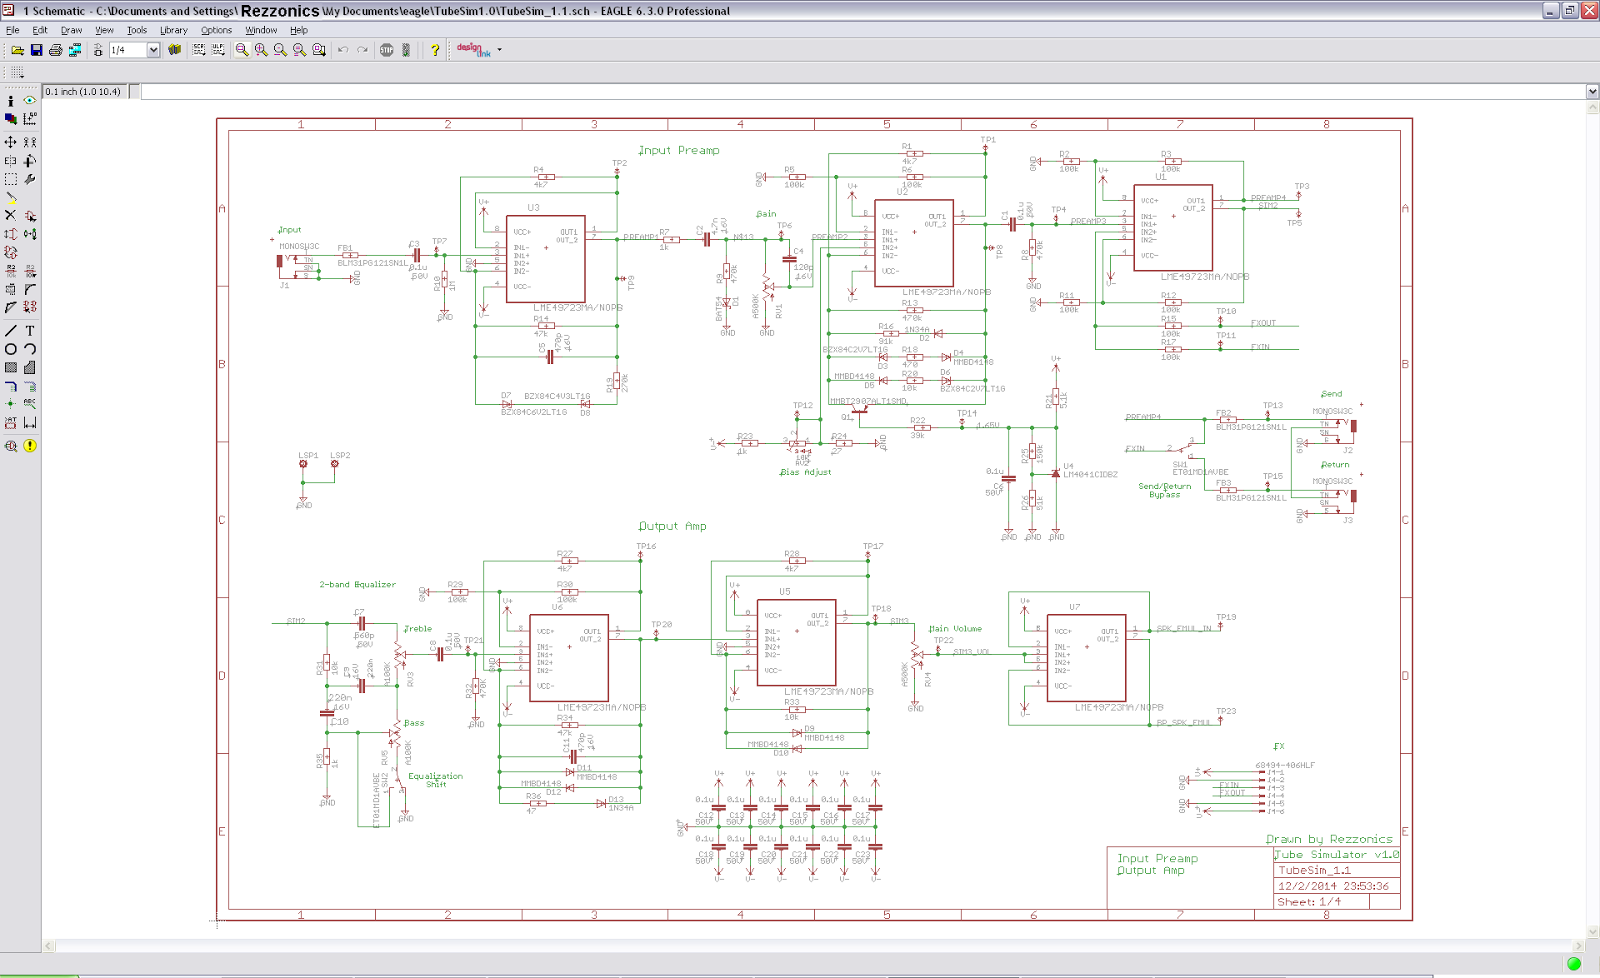 Rezzonics Tube Simulator Practical Implementation Schematics Op Amp Diagram Input Preamp And Output Page 1